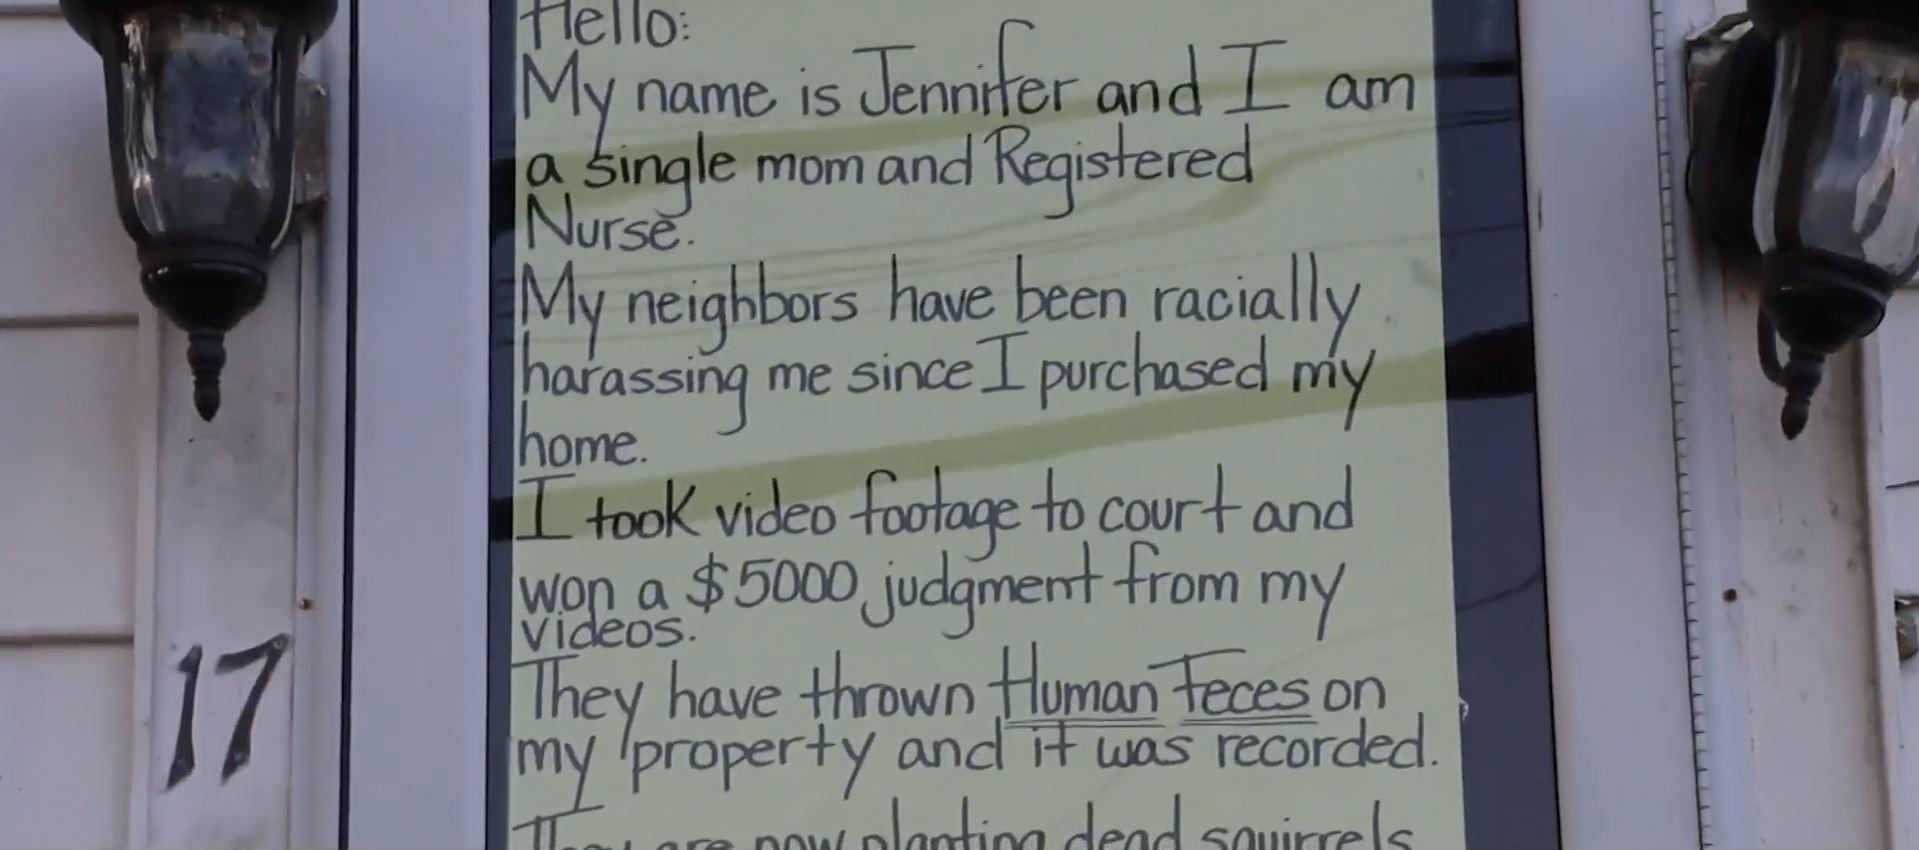 Black woman in New York claims years of racial harassment by neighbors